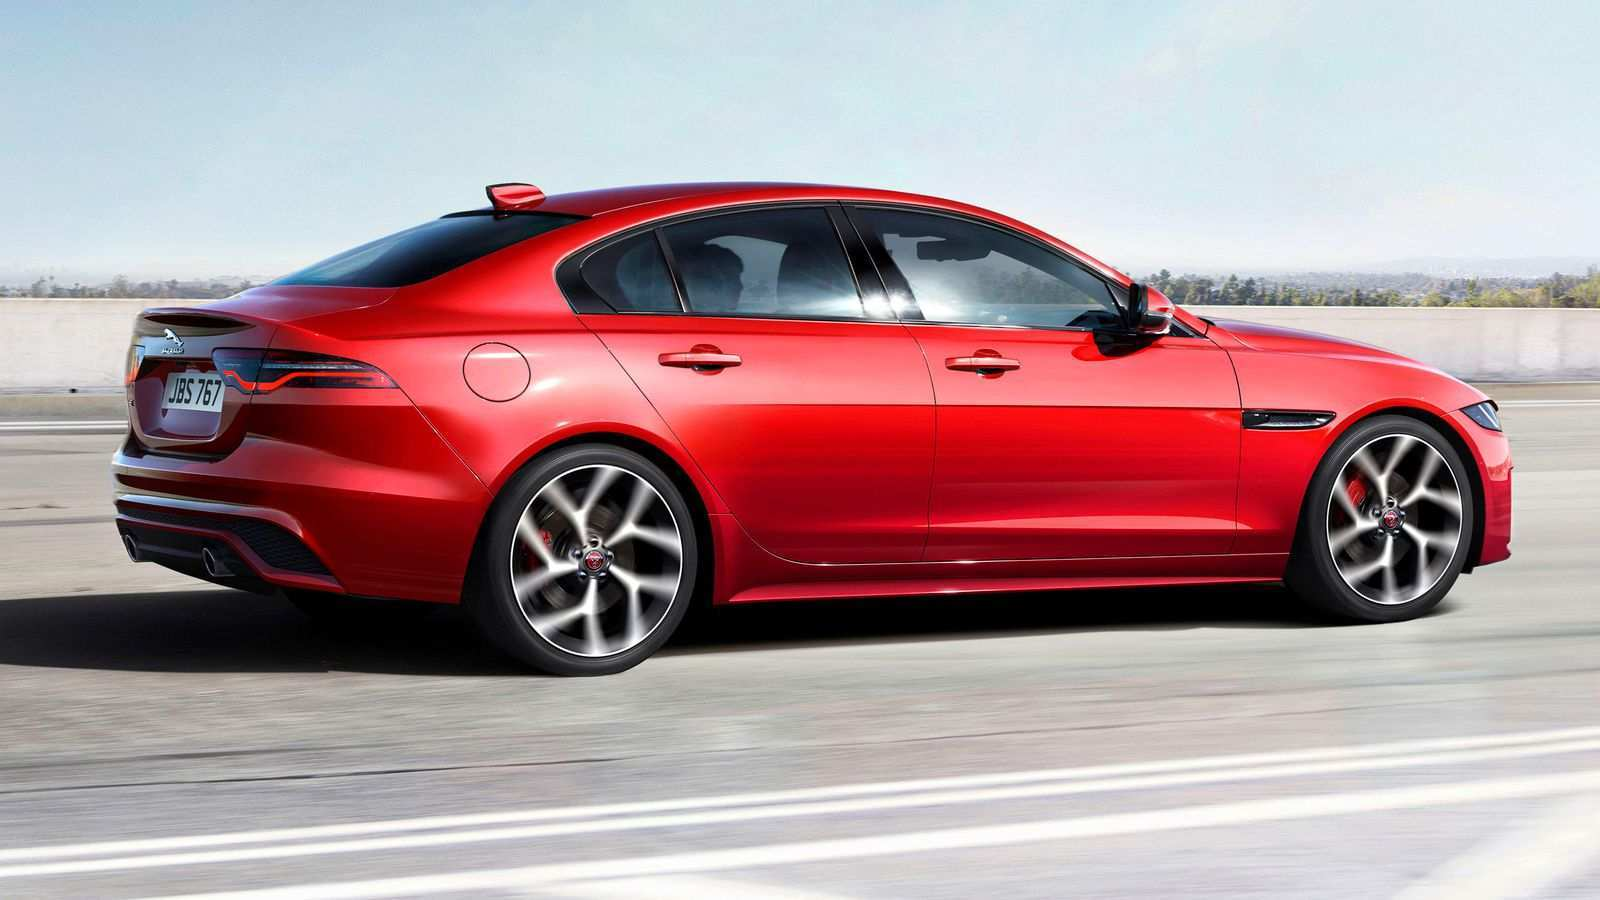 84 New 2020 Jaguar Xe Sedan Spy Shoot with 2020 Jaguar Xe Sedan